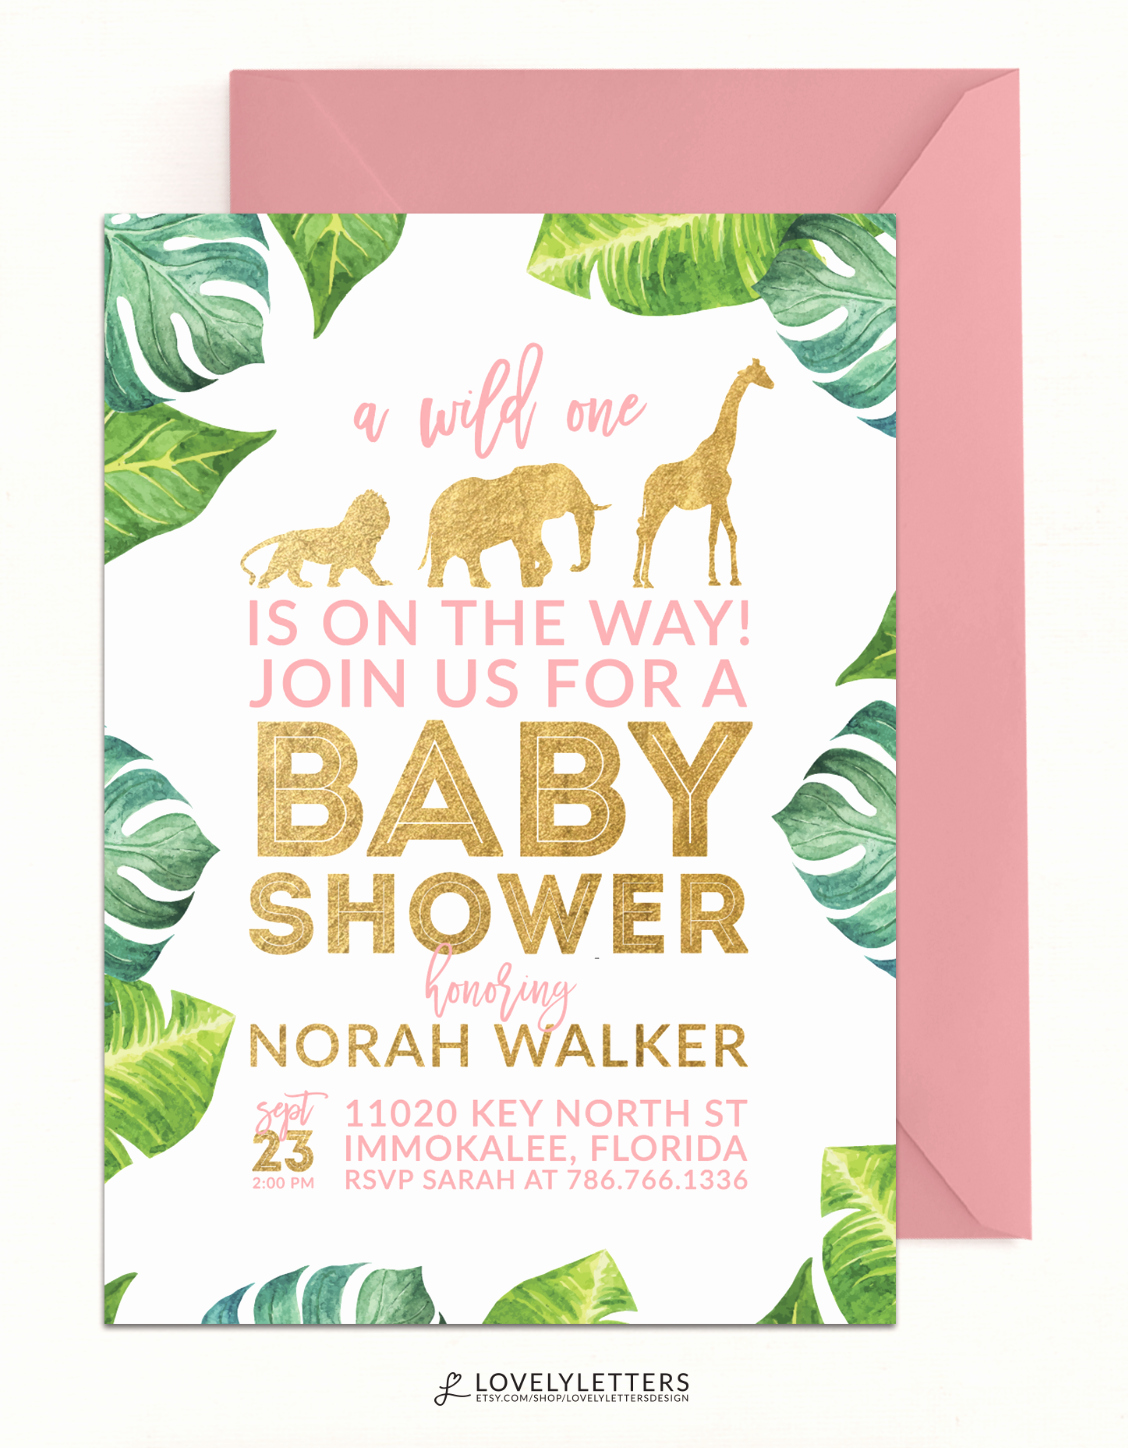 Baby Shower Safari Invitation Inspirational Safari Shower Invitation Golden Baby Shower Invitation